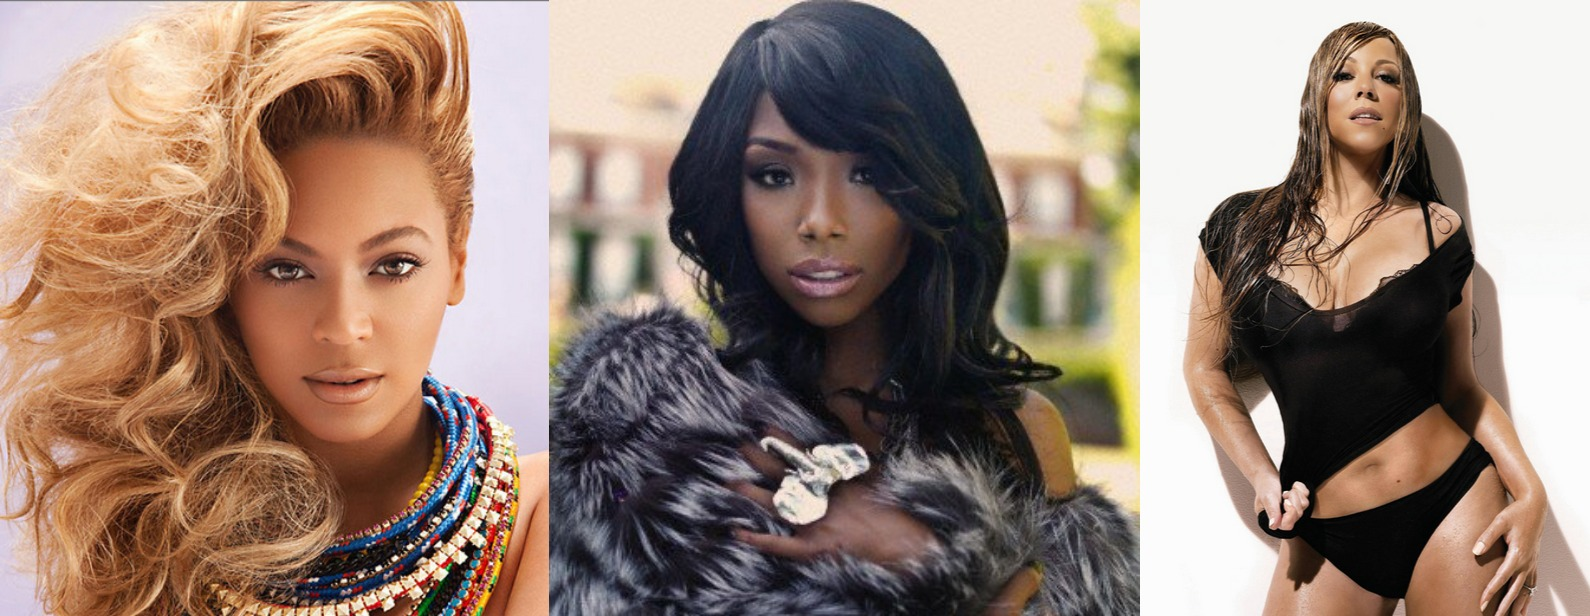 Pop Music Amp And Its Rejection Of Dark Skinned Women That